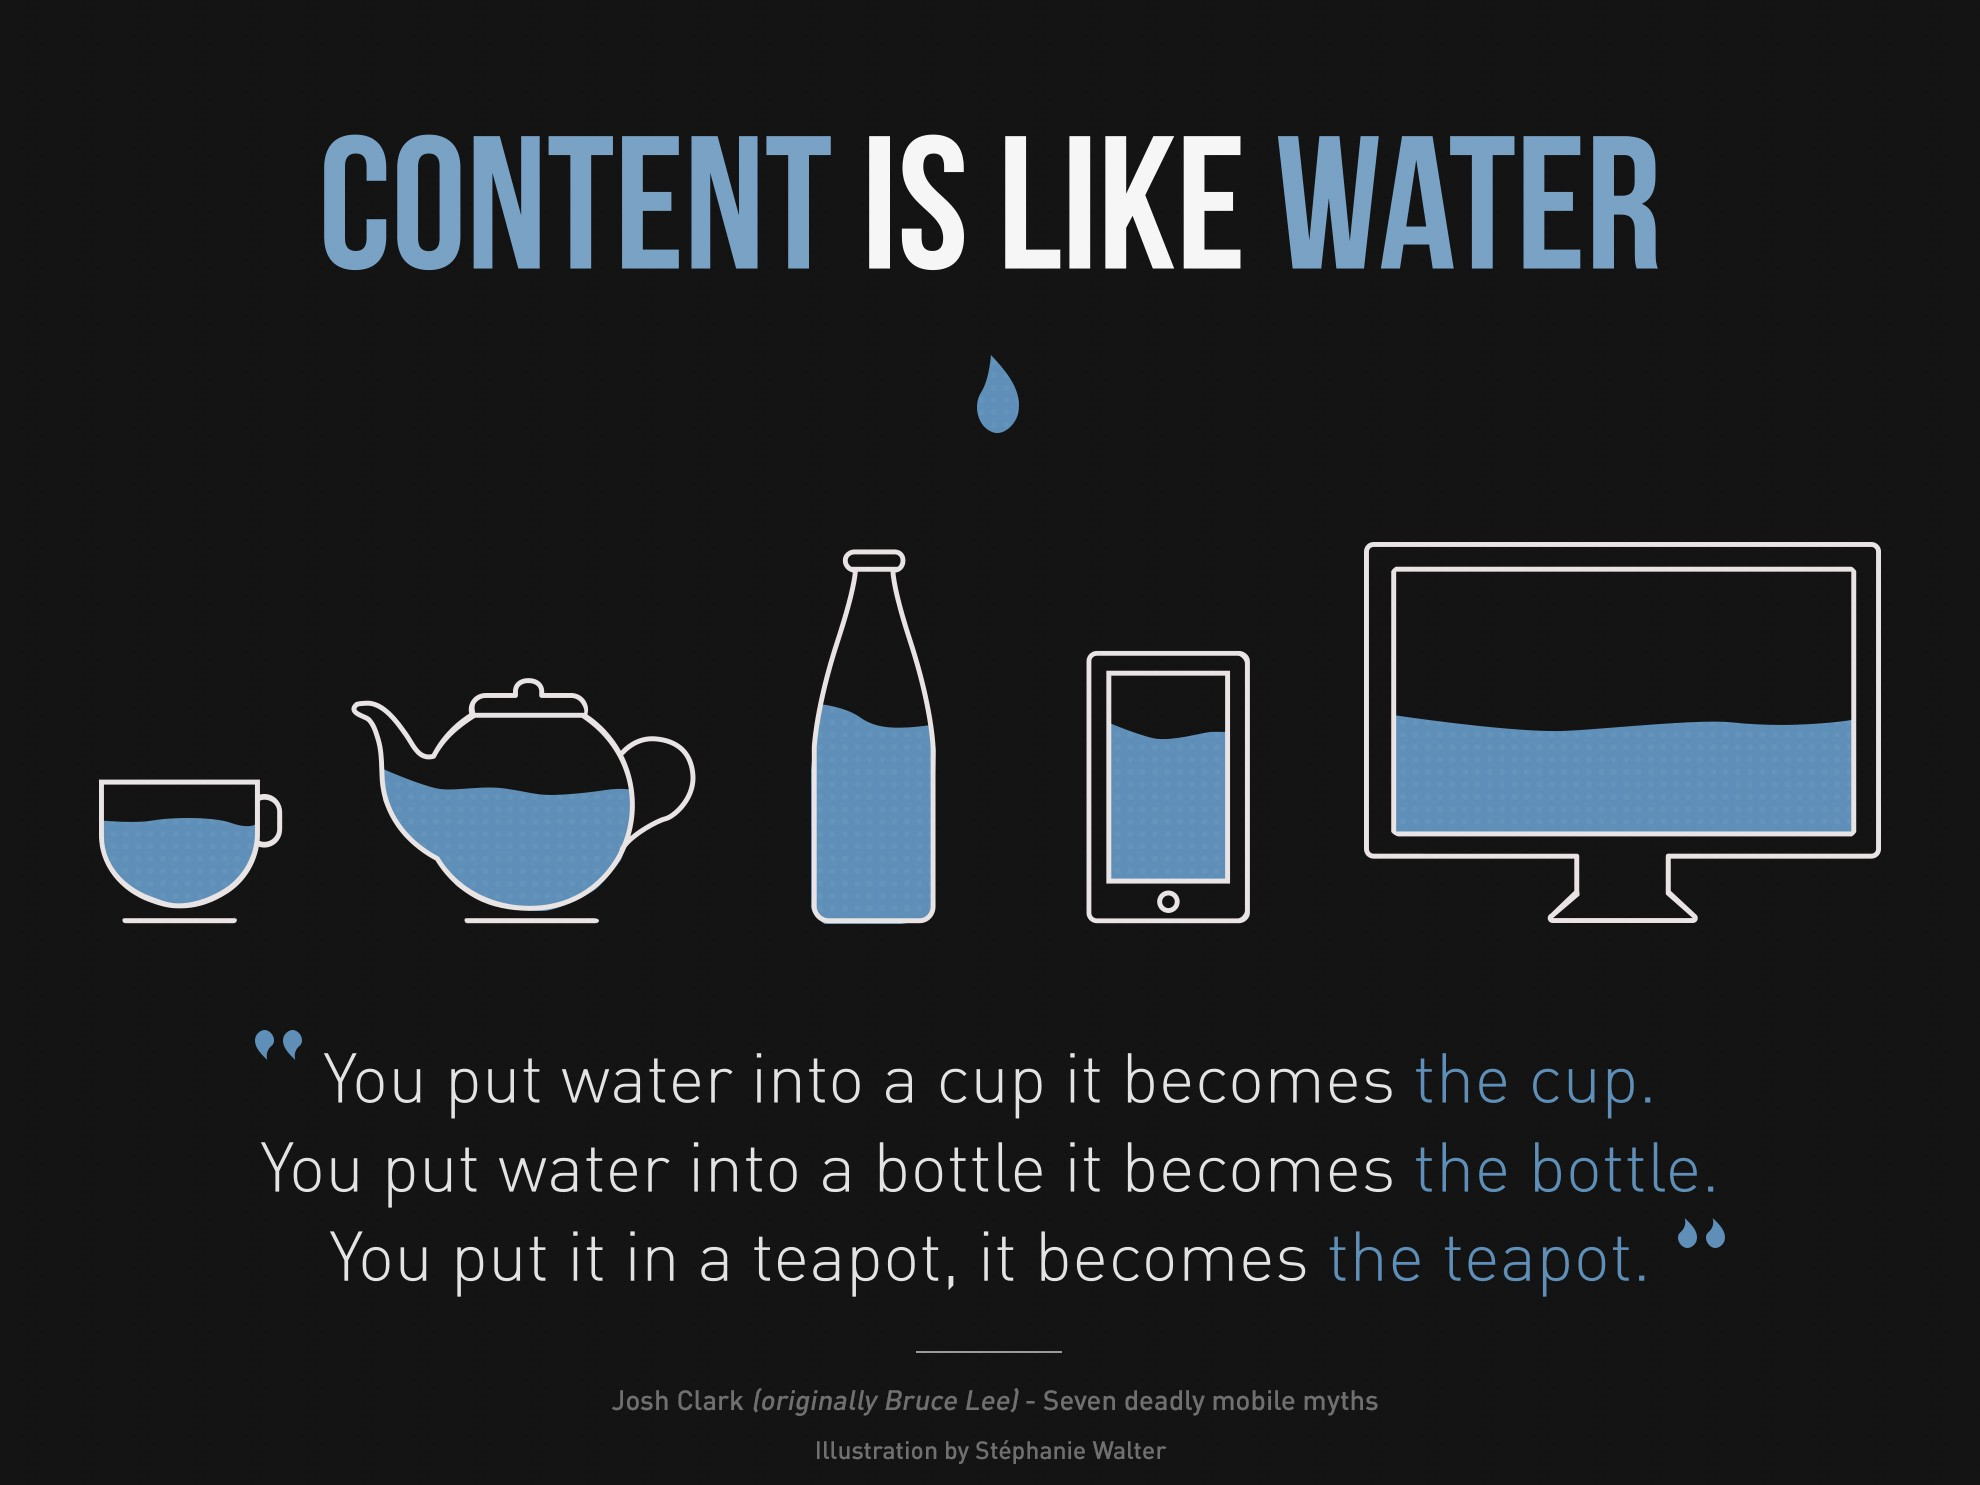 Content is like water infographic - Stephanie Walter